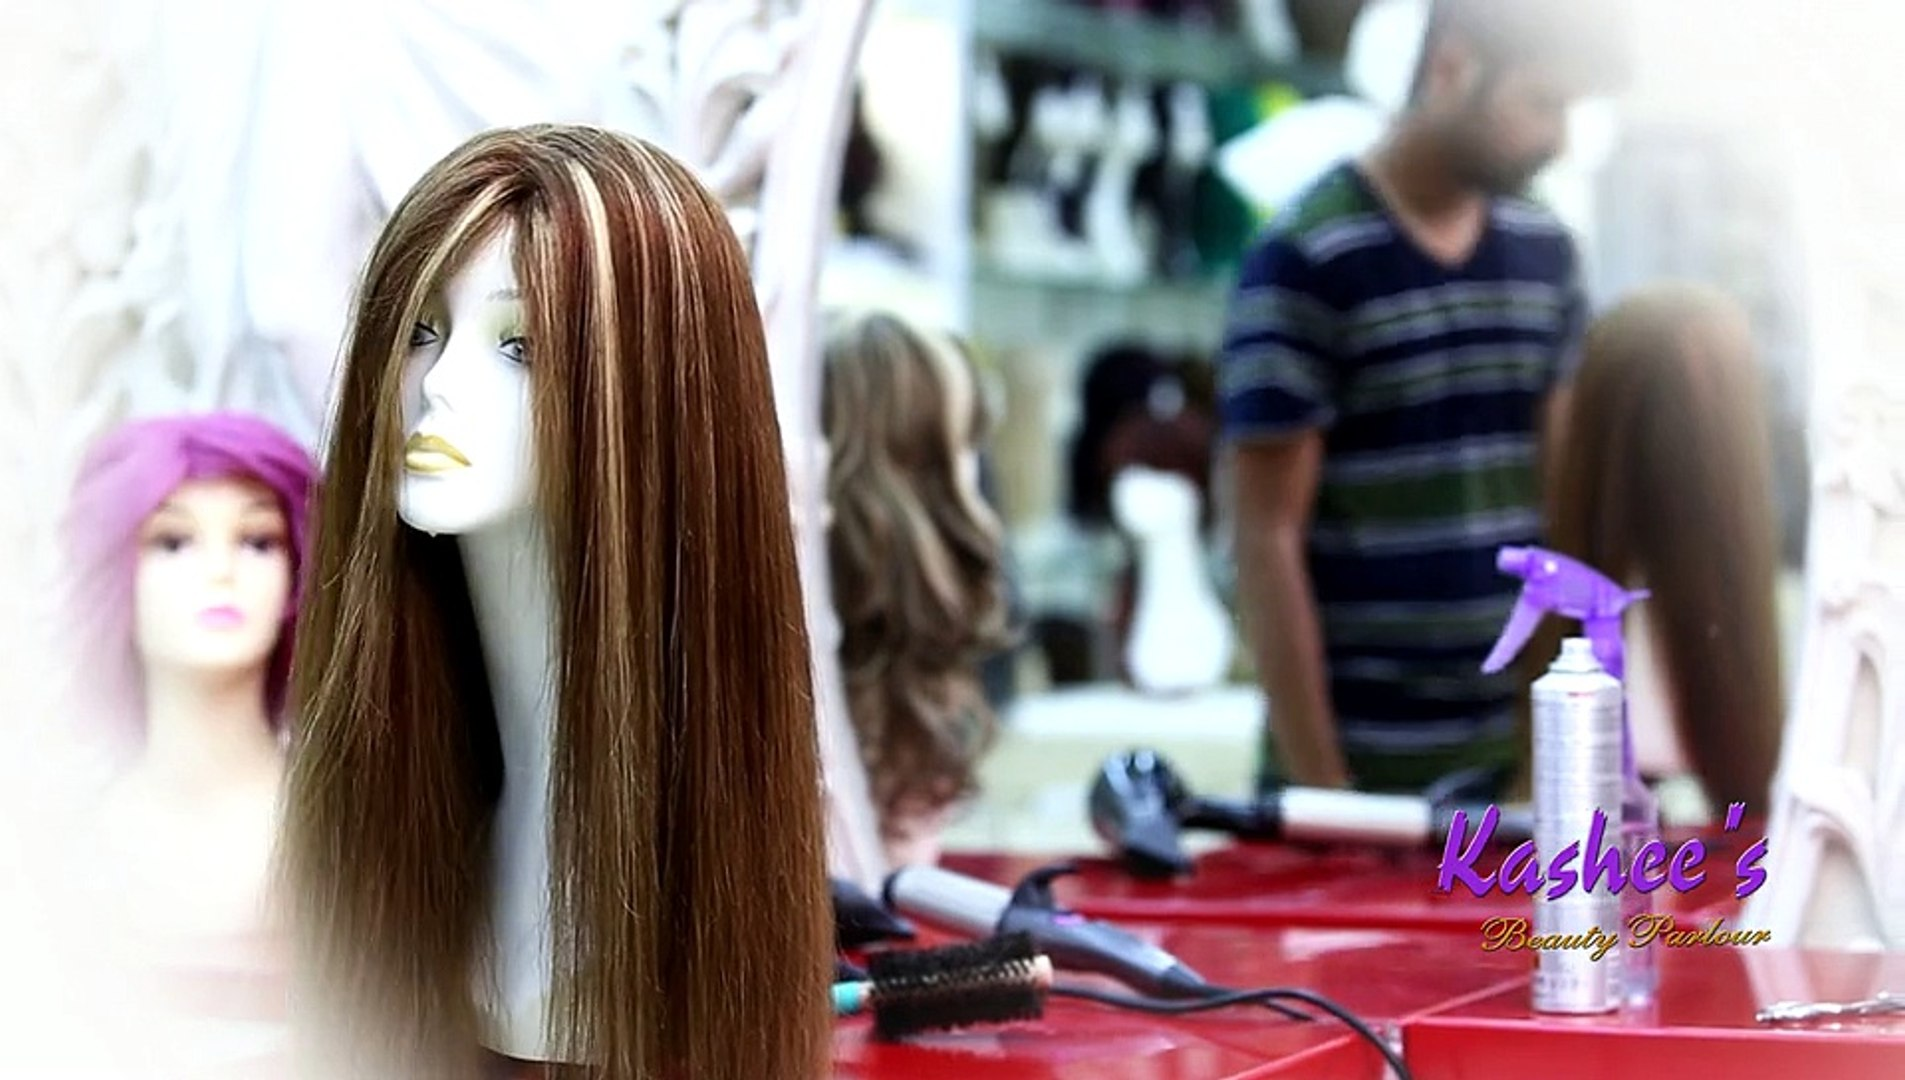 KASHEE'S HAIR STYLING